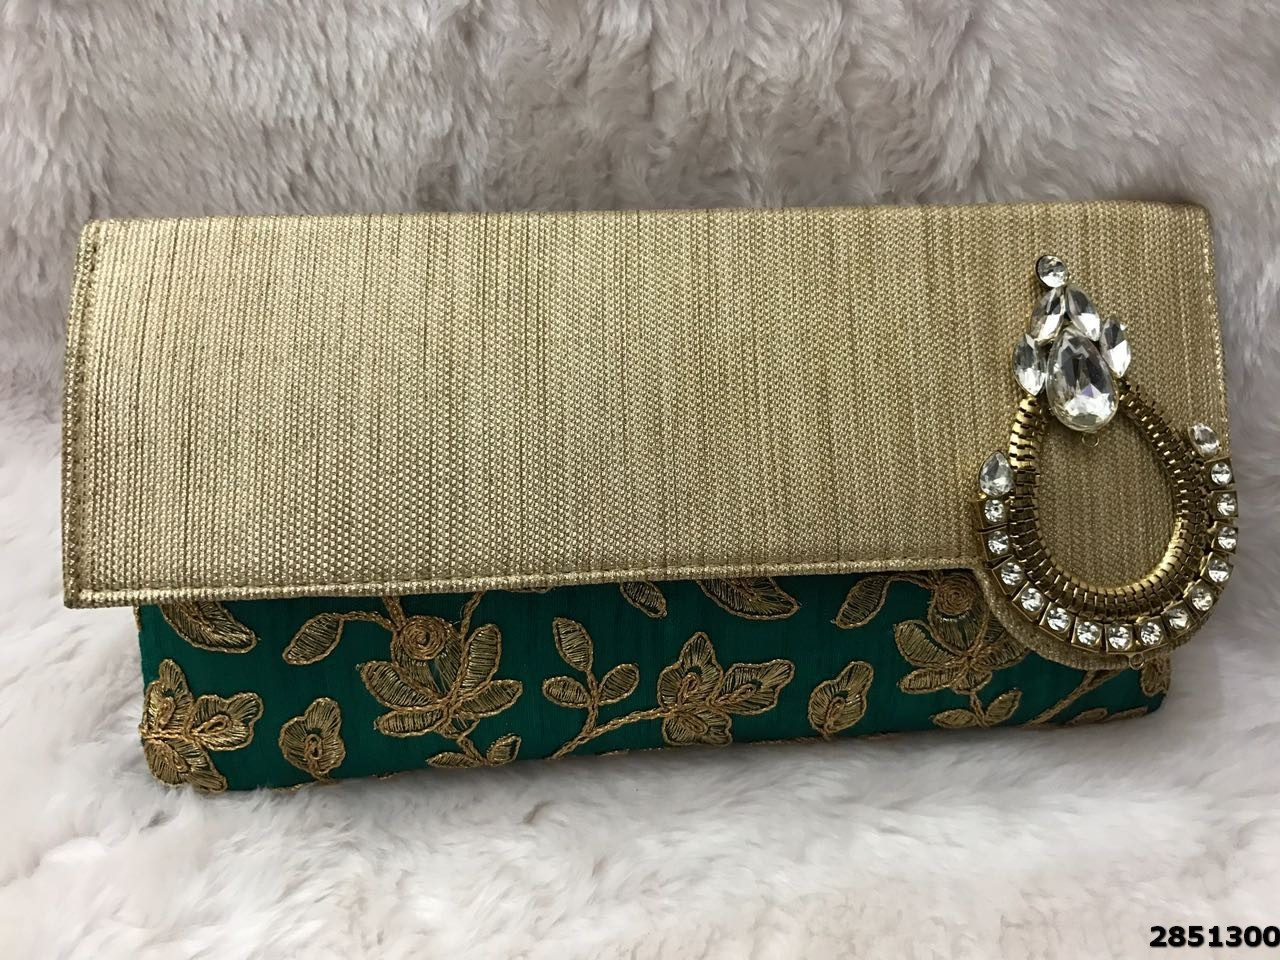 Adorable Designer Clutch Bags